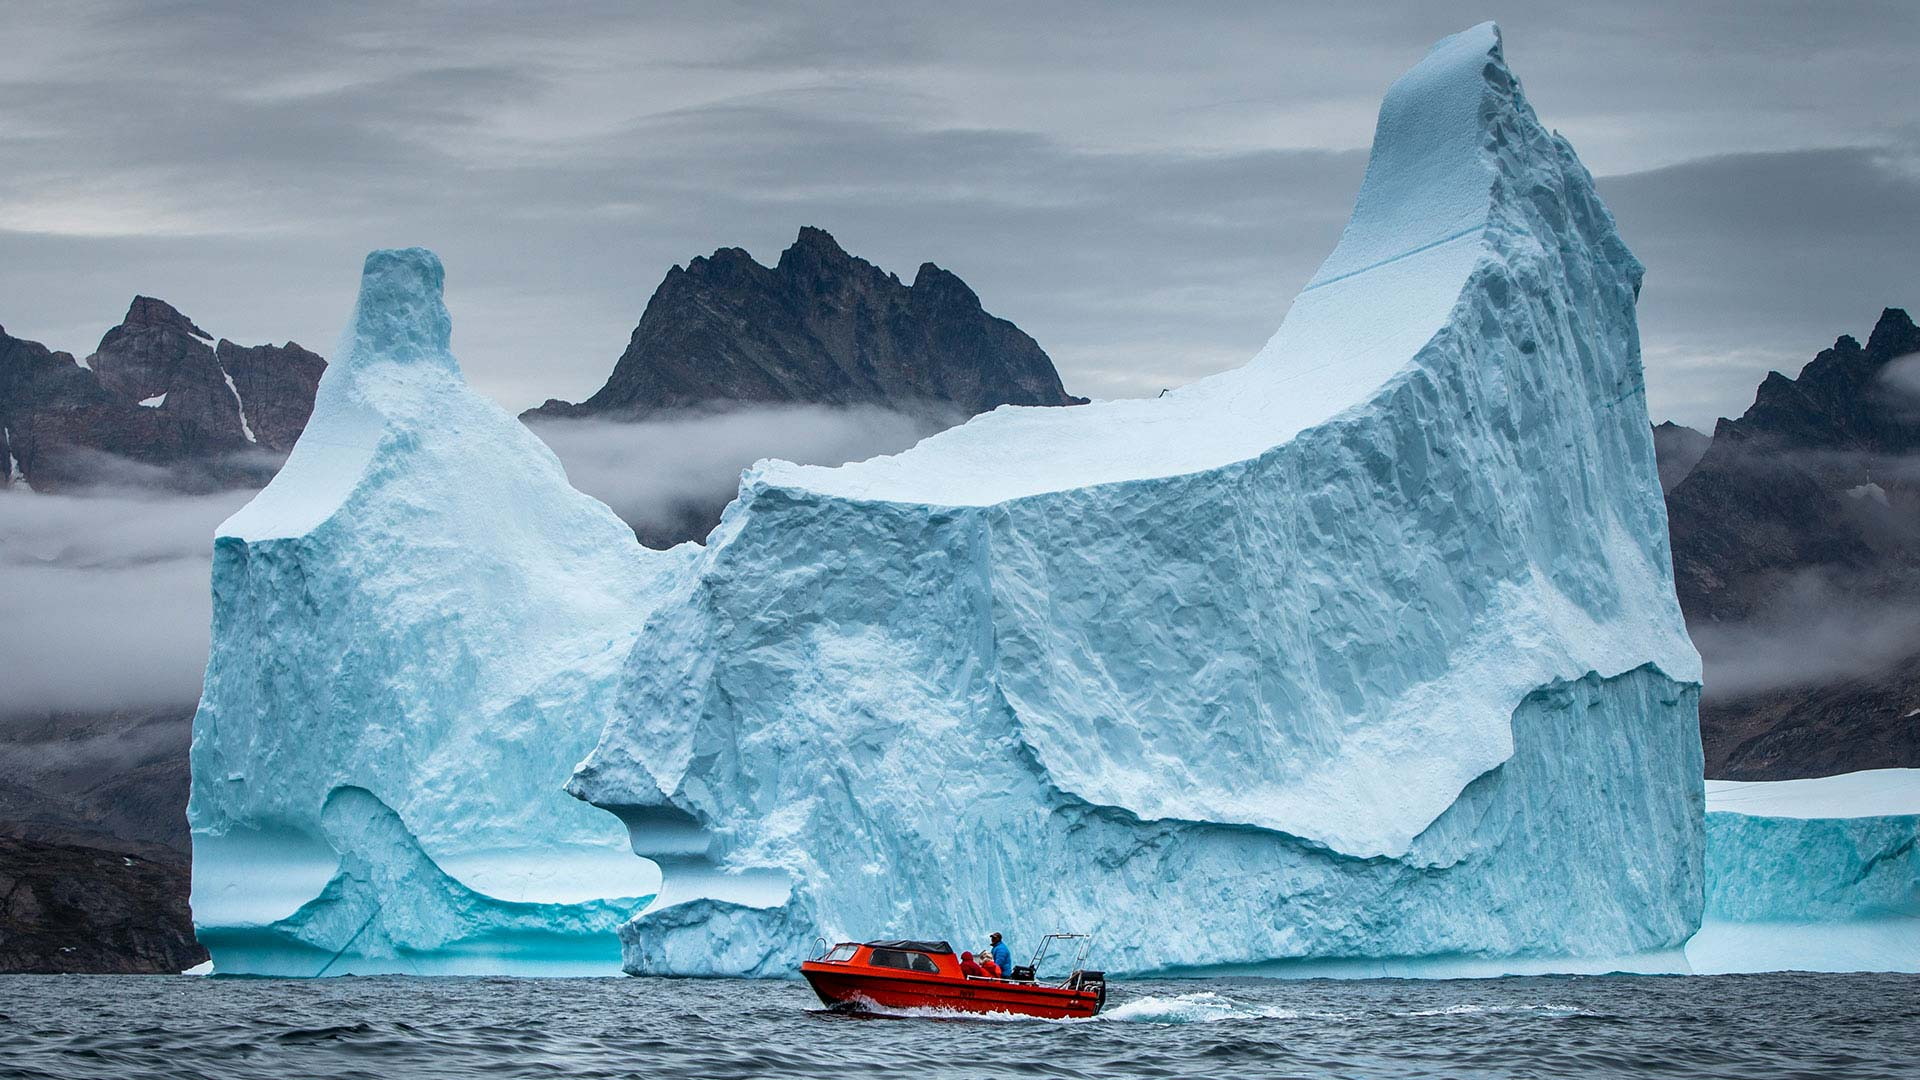 greenland offers icy adventures to travelers See the best tours in greenland with real reviews visiting places like reykjavik and ilulissat all major brands greenland tours greenland tours and trips 2018/2019 promotional codes and other special offers cannot be applied toward prior purchases.